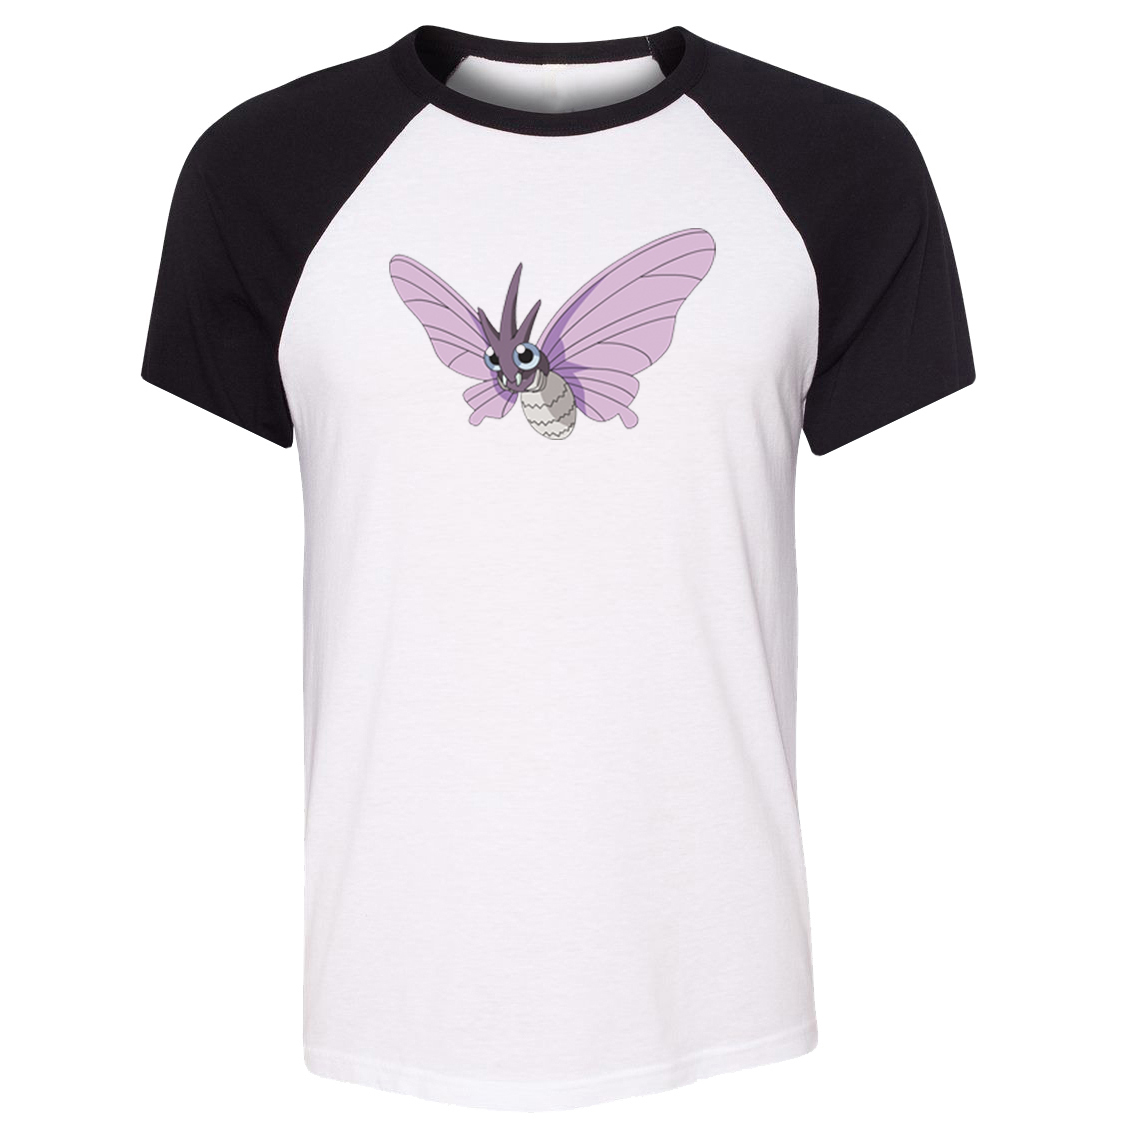 Unisex T-shirt Cartoon Poison Bug Type Pokemon National Pokedex 049 Venomoth Pattern Raglan Short Sleeve Men T shirt Tee Tops image